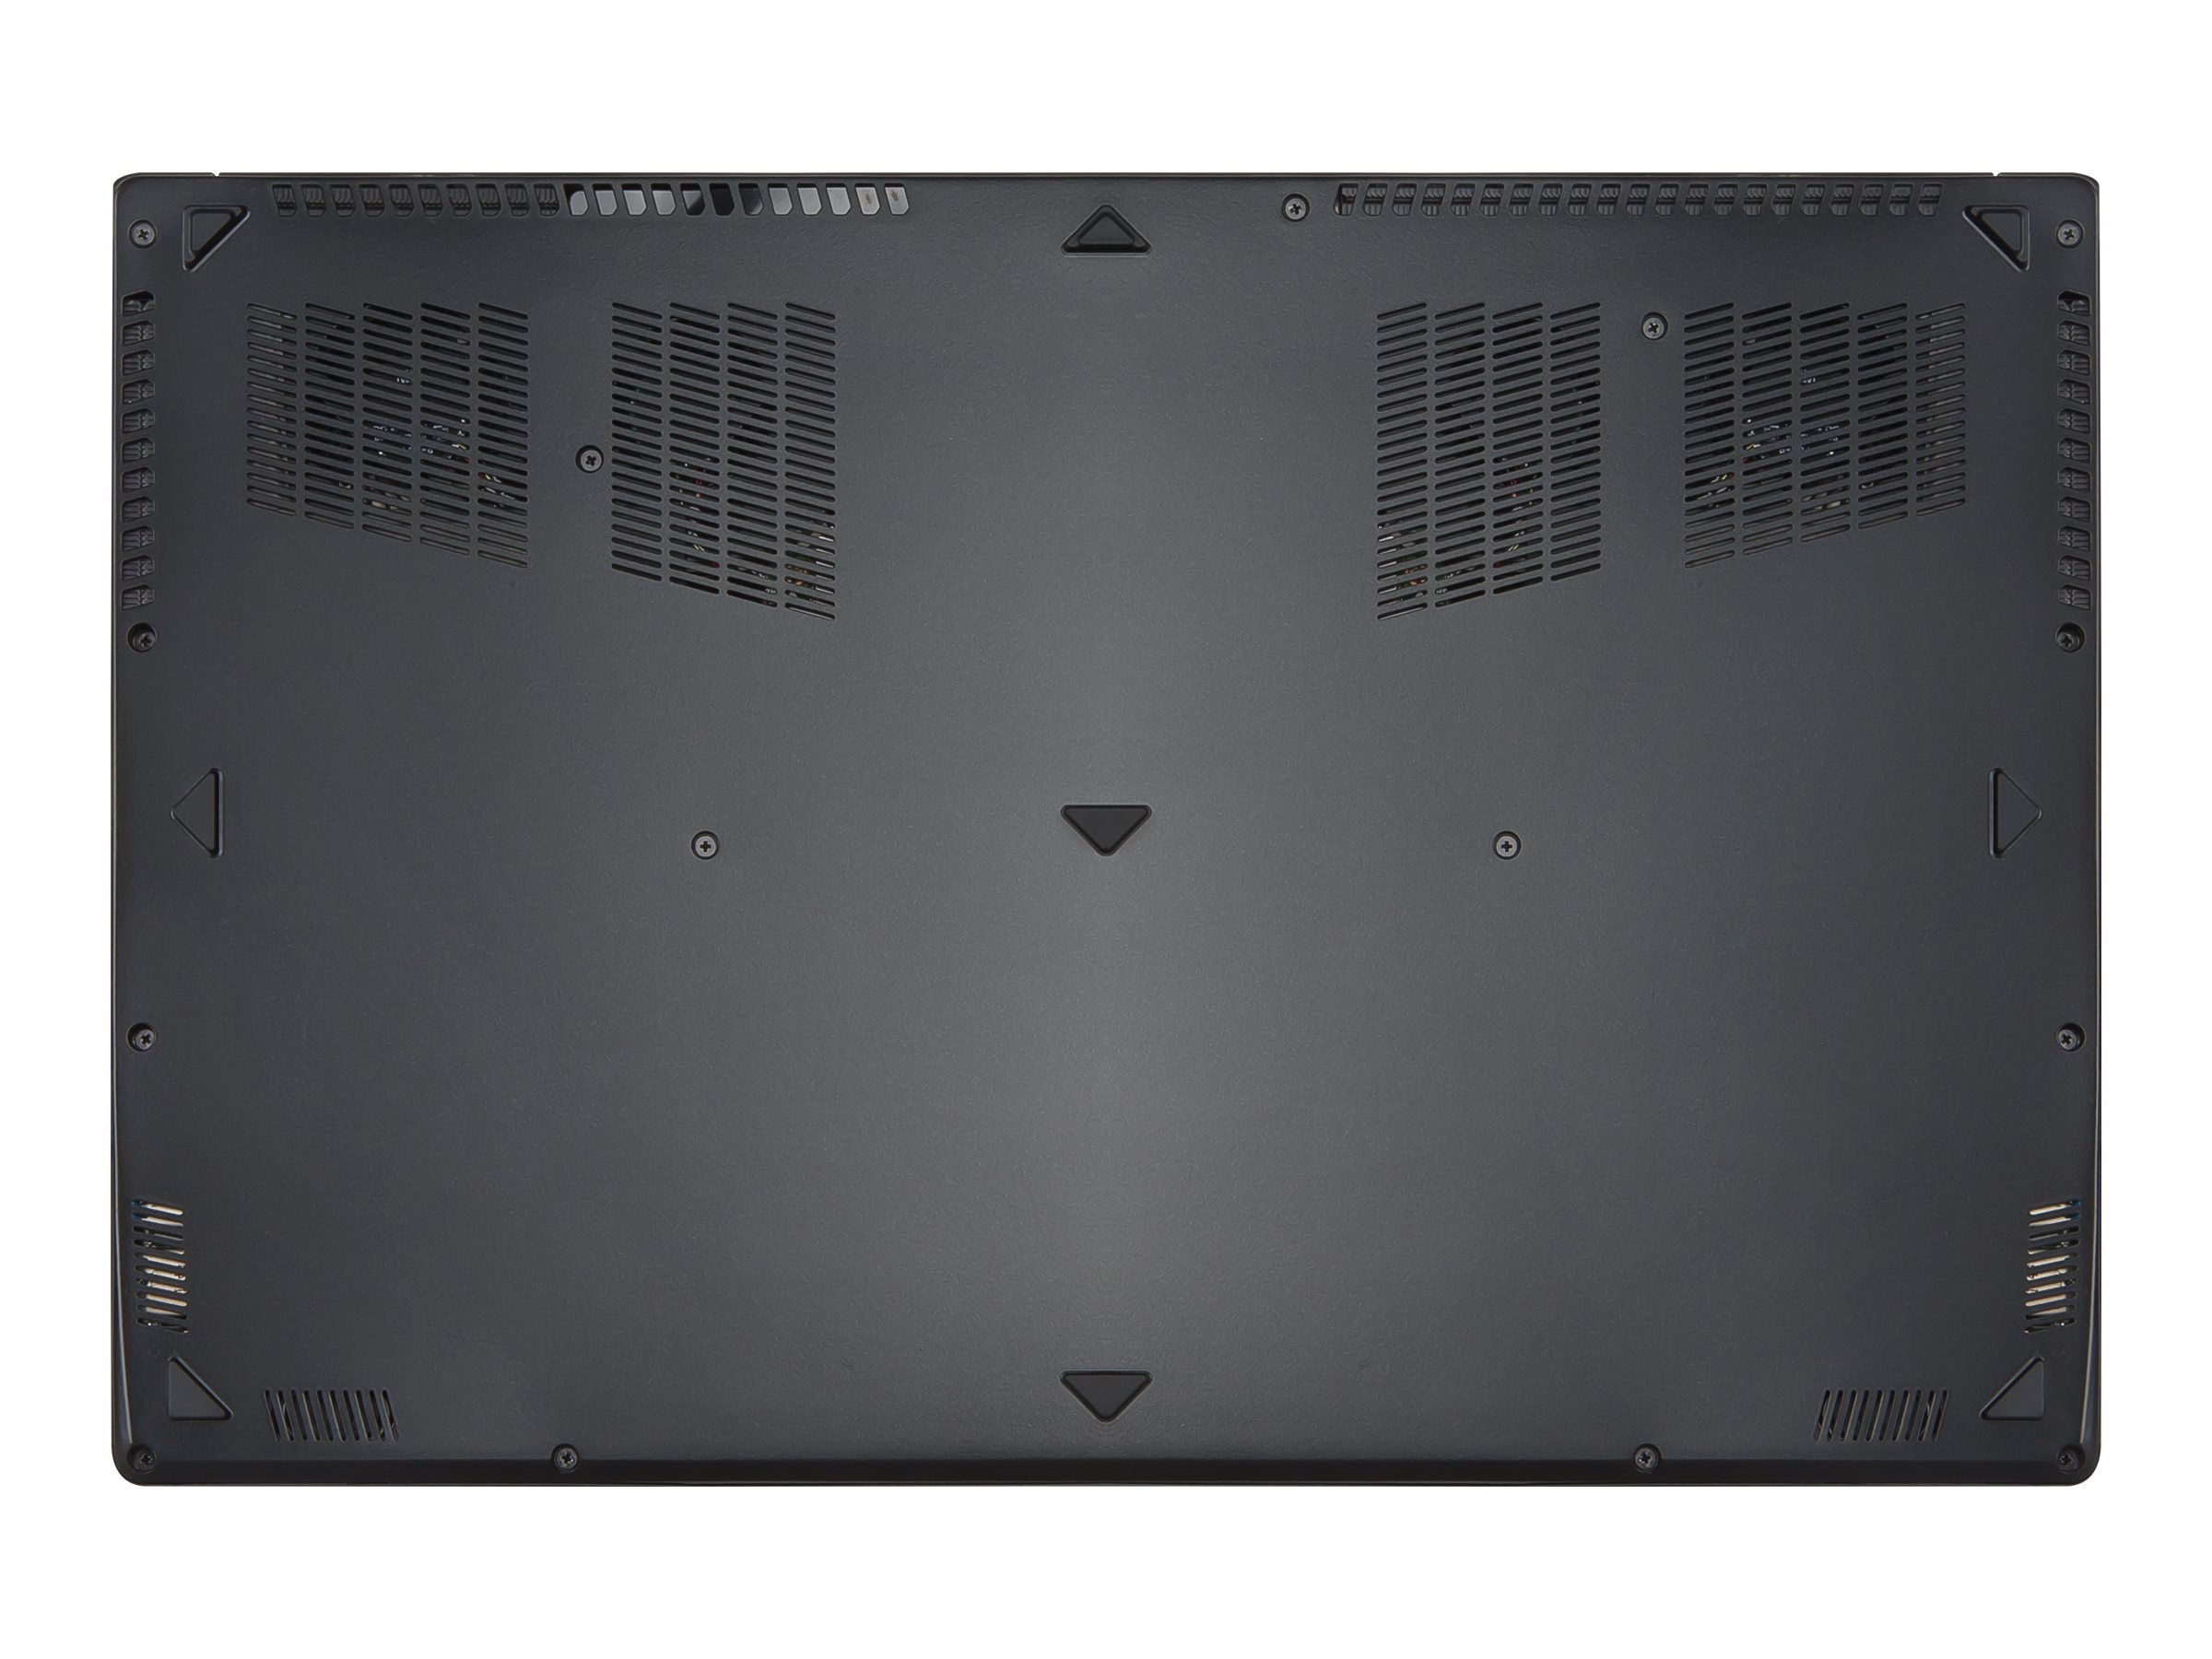 MSI Computer GS63VR STEALTH PRO-034 Image 10